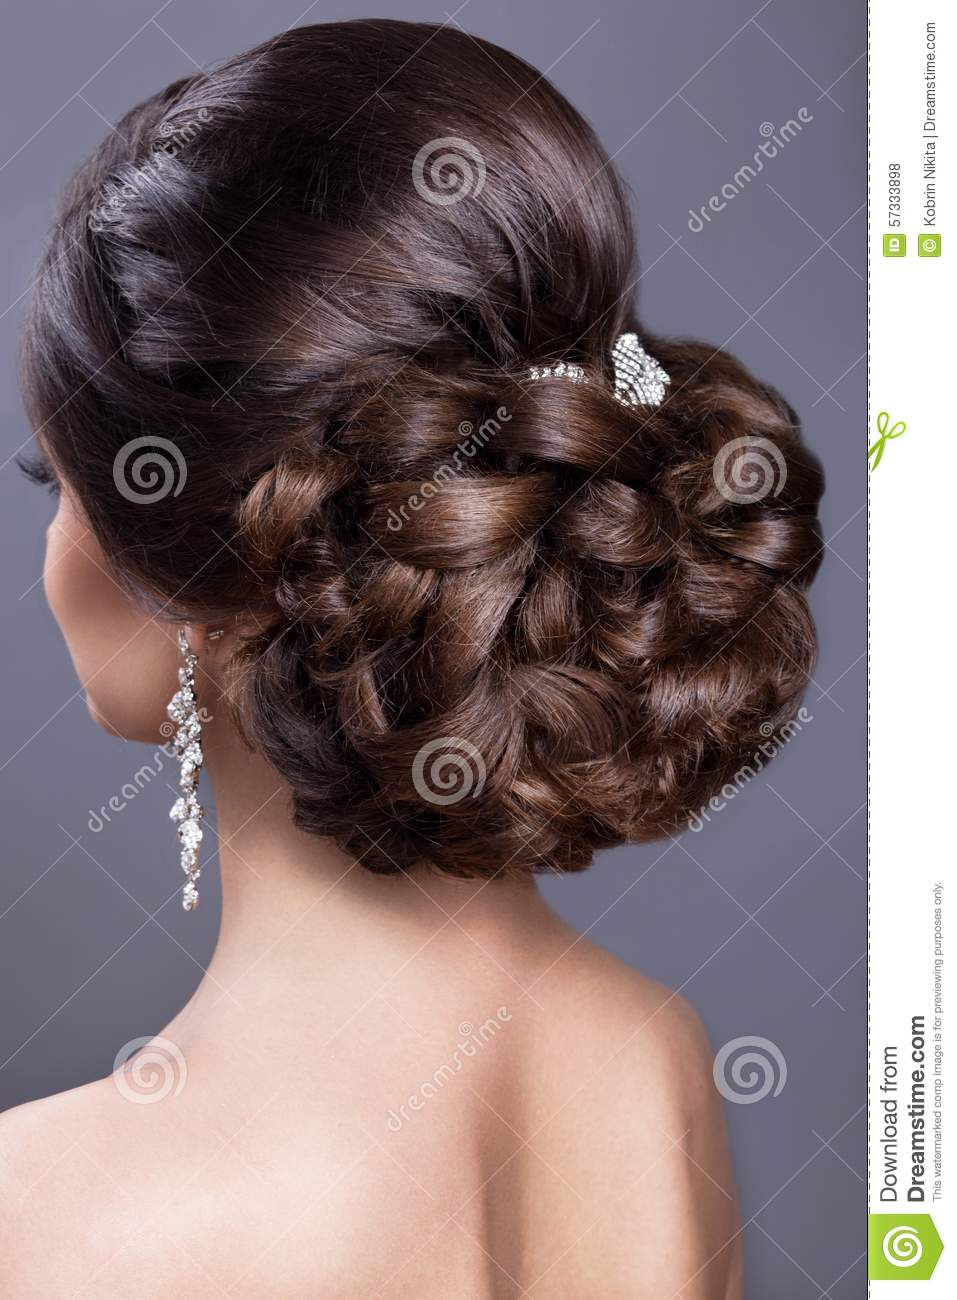 Beautiful Woman In Image The Bride Beauty Hair